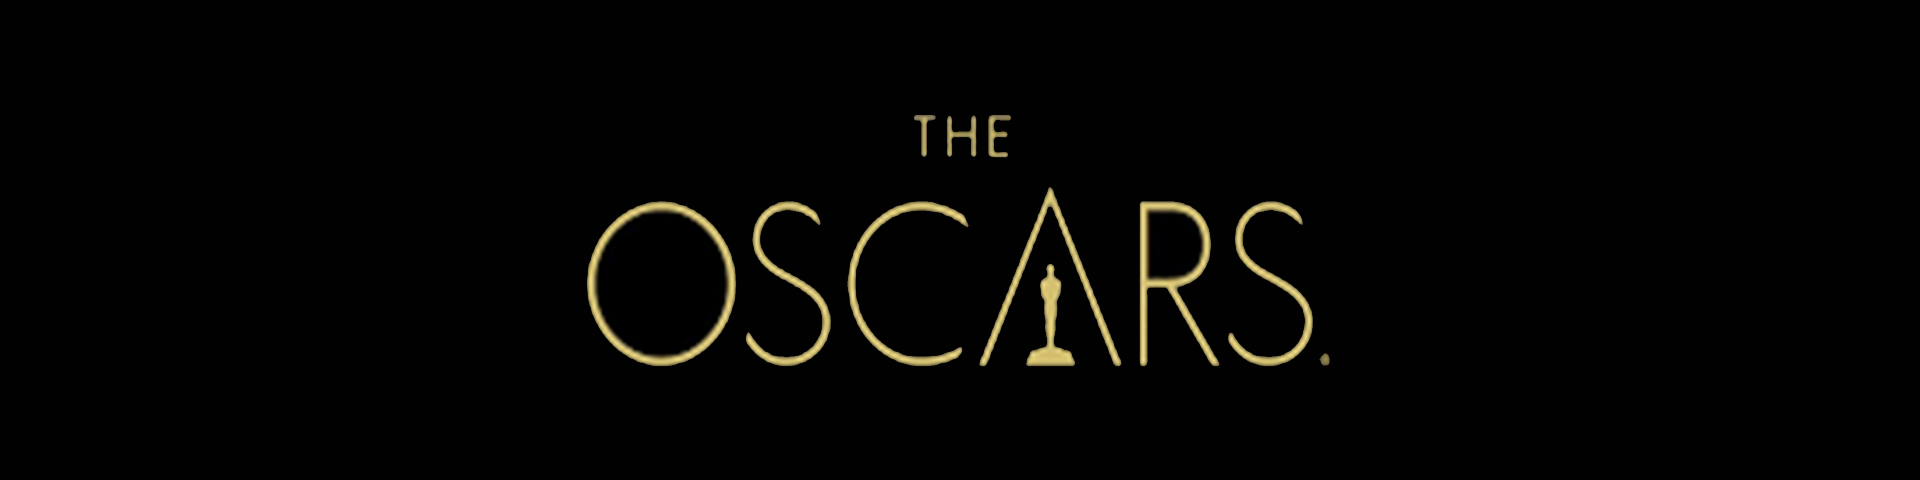 the oscars header.png